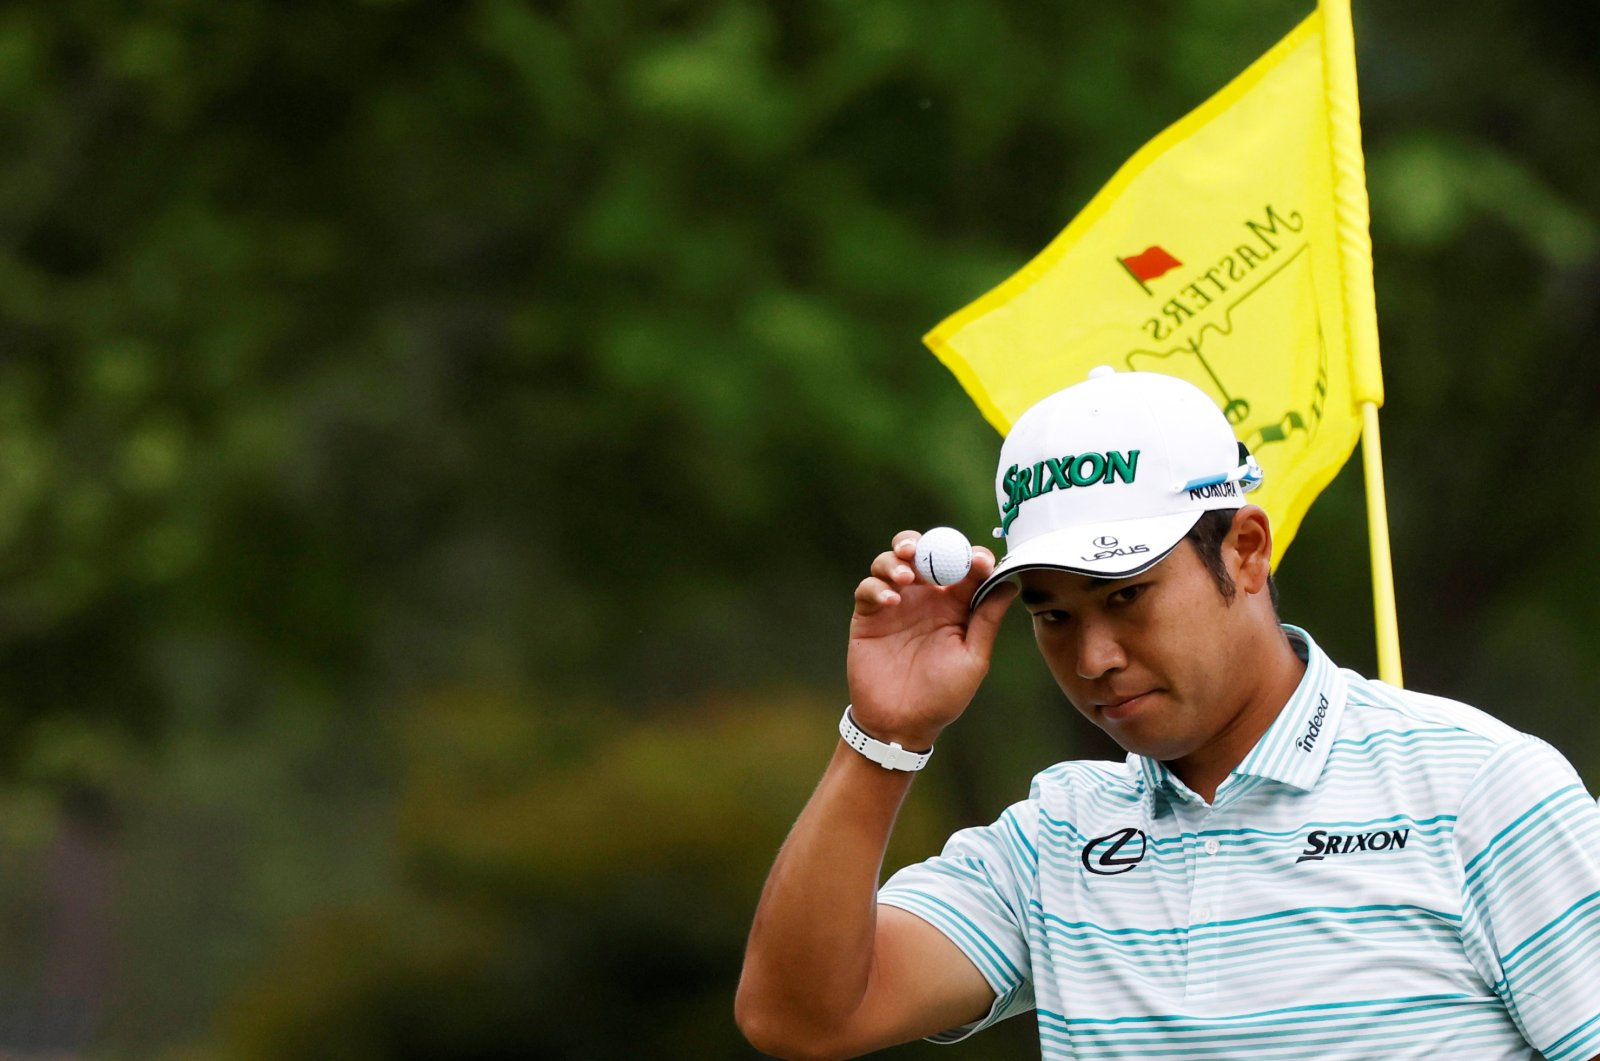 Japan's Hideki Matsuyama acknowledges the crowd after holing his eagle putt on the 15th green during the third round at the Masters, Augusta National Golf Club, Augusta, Georgia, U.S., April 10, 2021. (Reuters Photo)